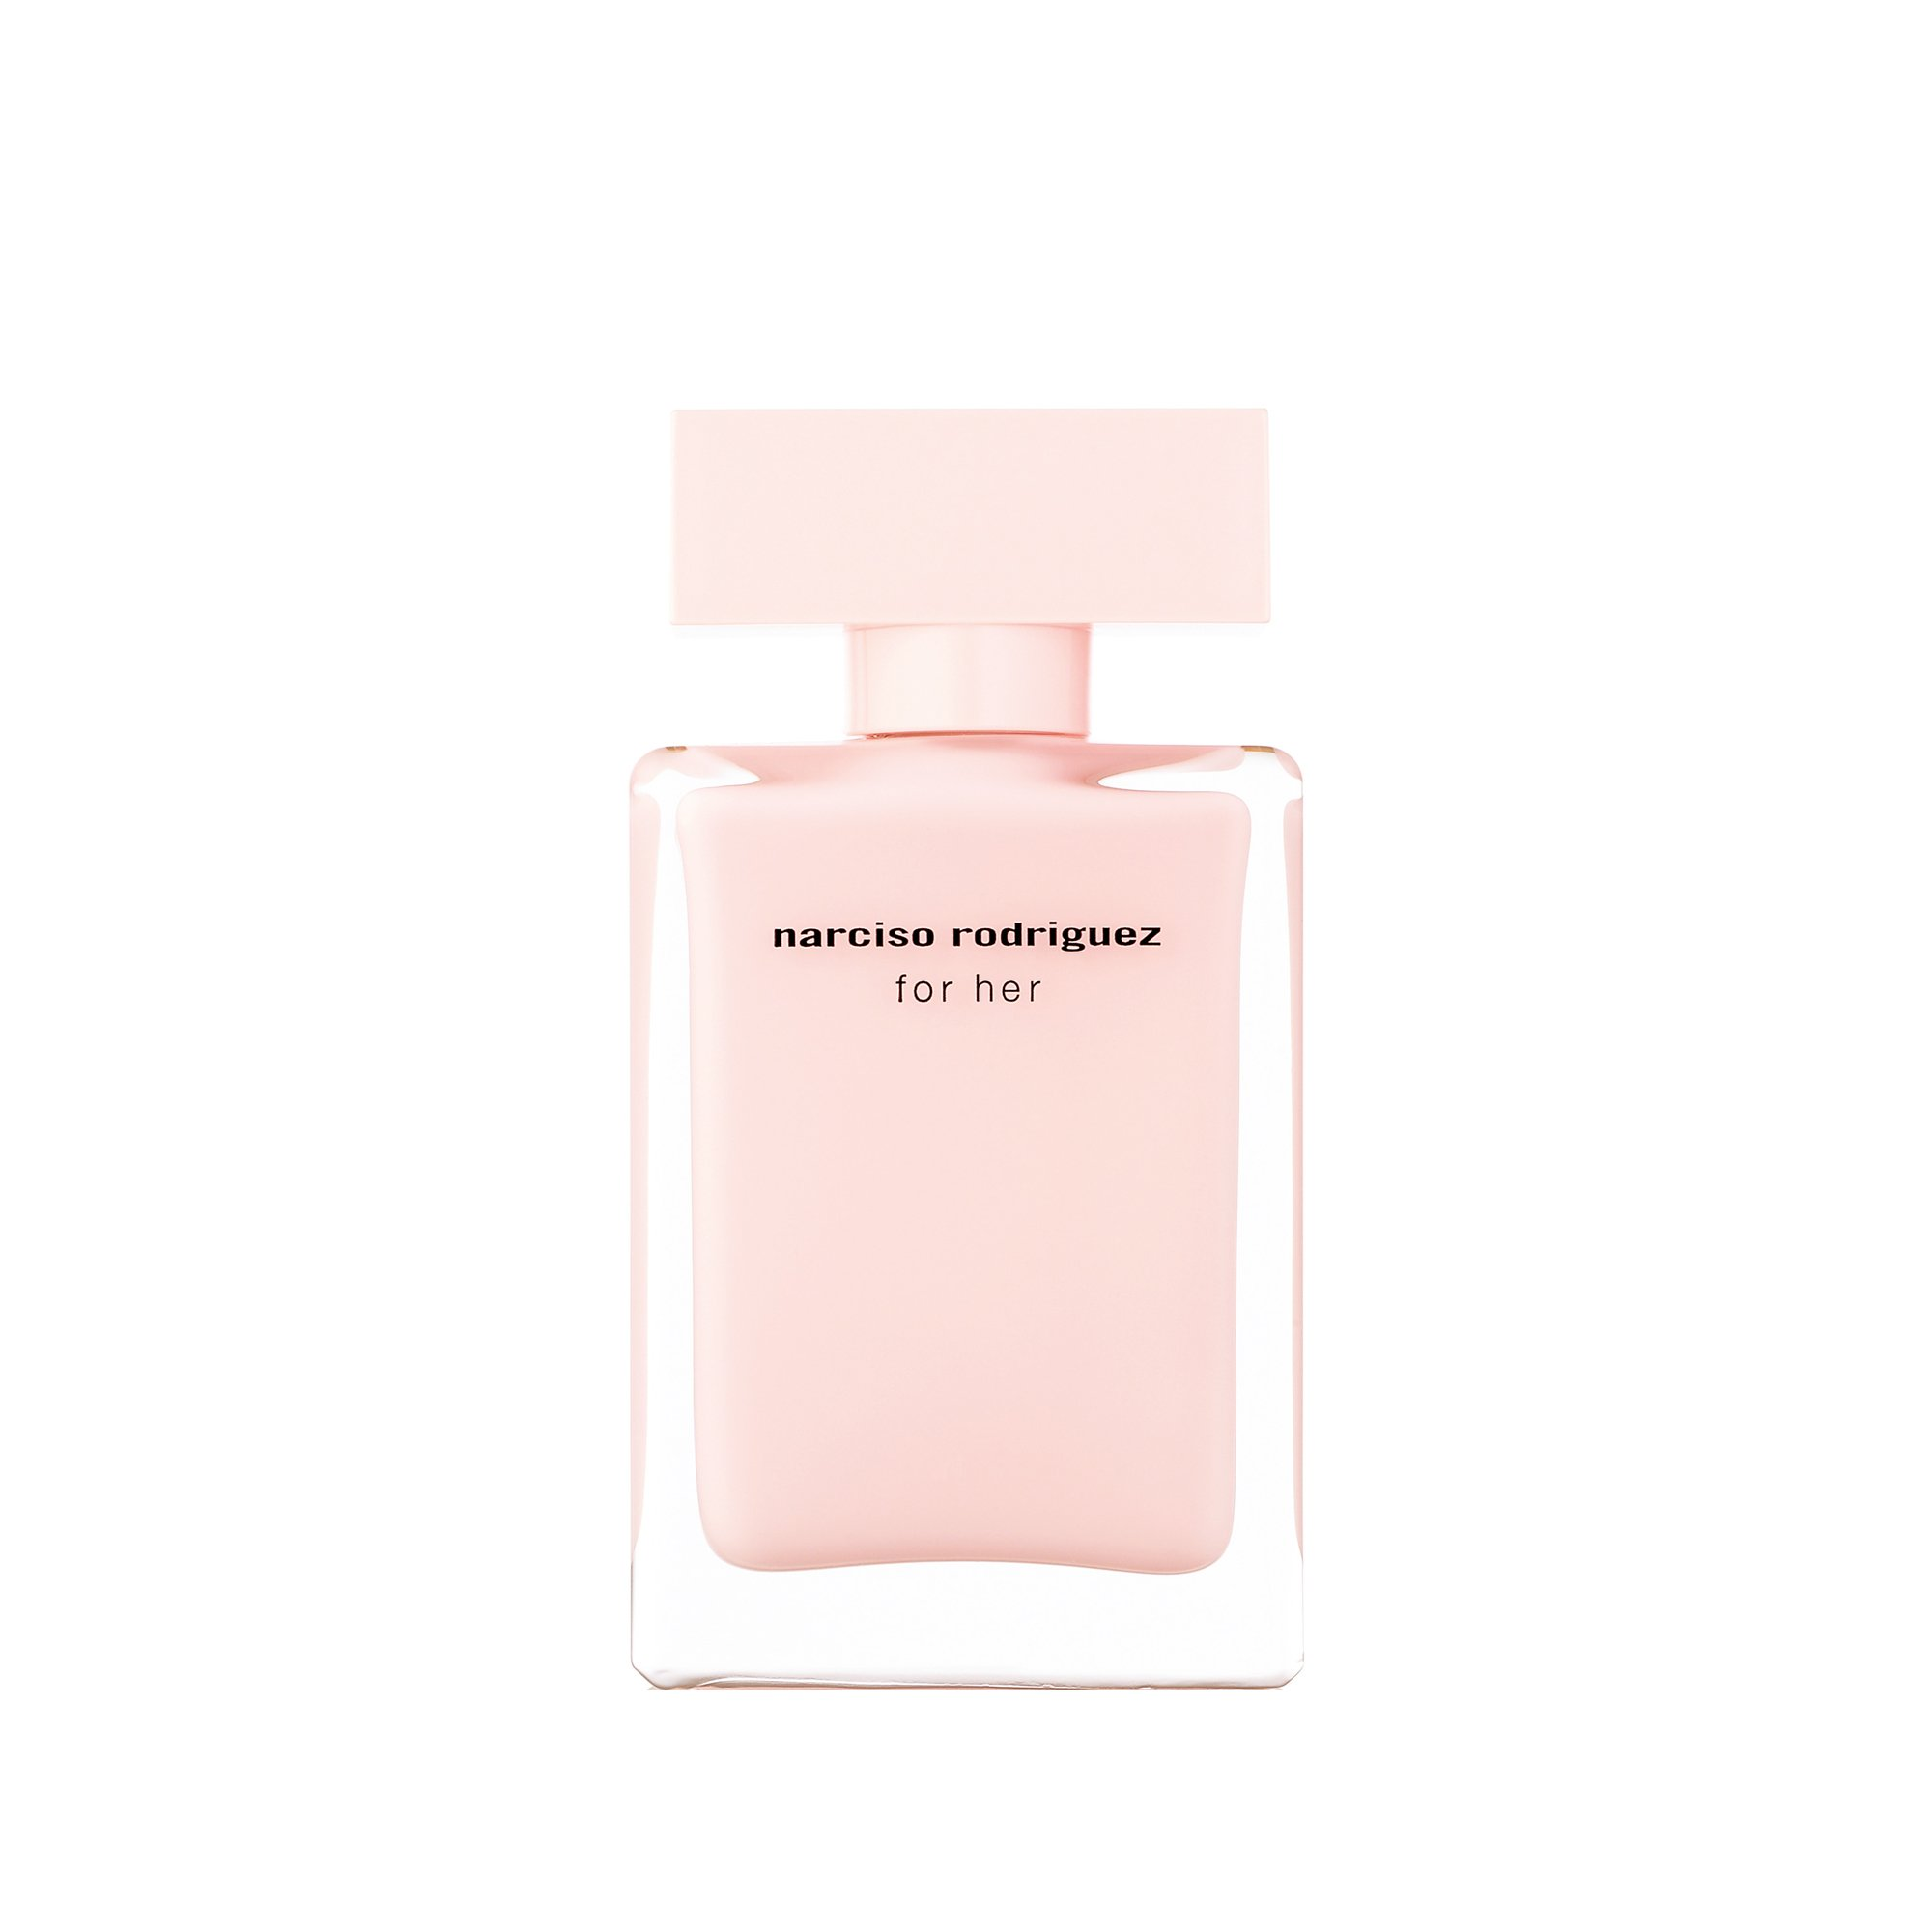 Narciso Rodriguez By Narciso Rodriguez For Her, Eau De Parfum Spray, 1.6-Ounce Bottle